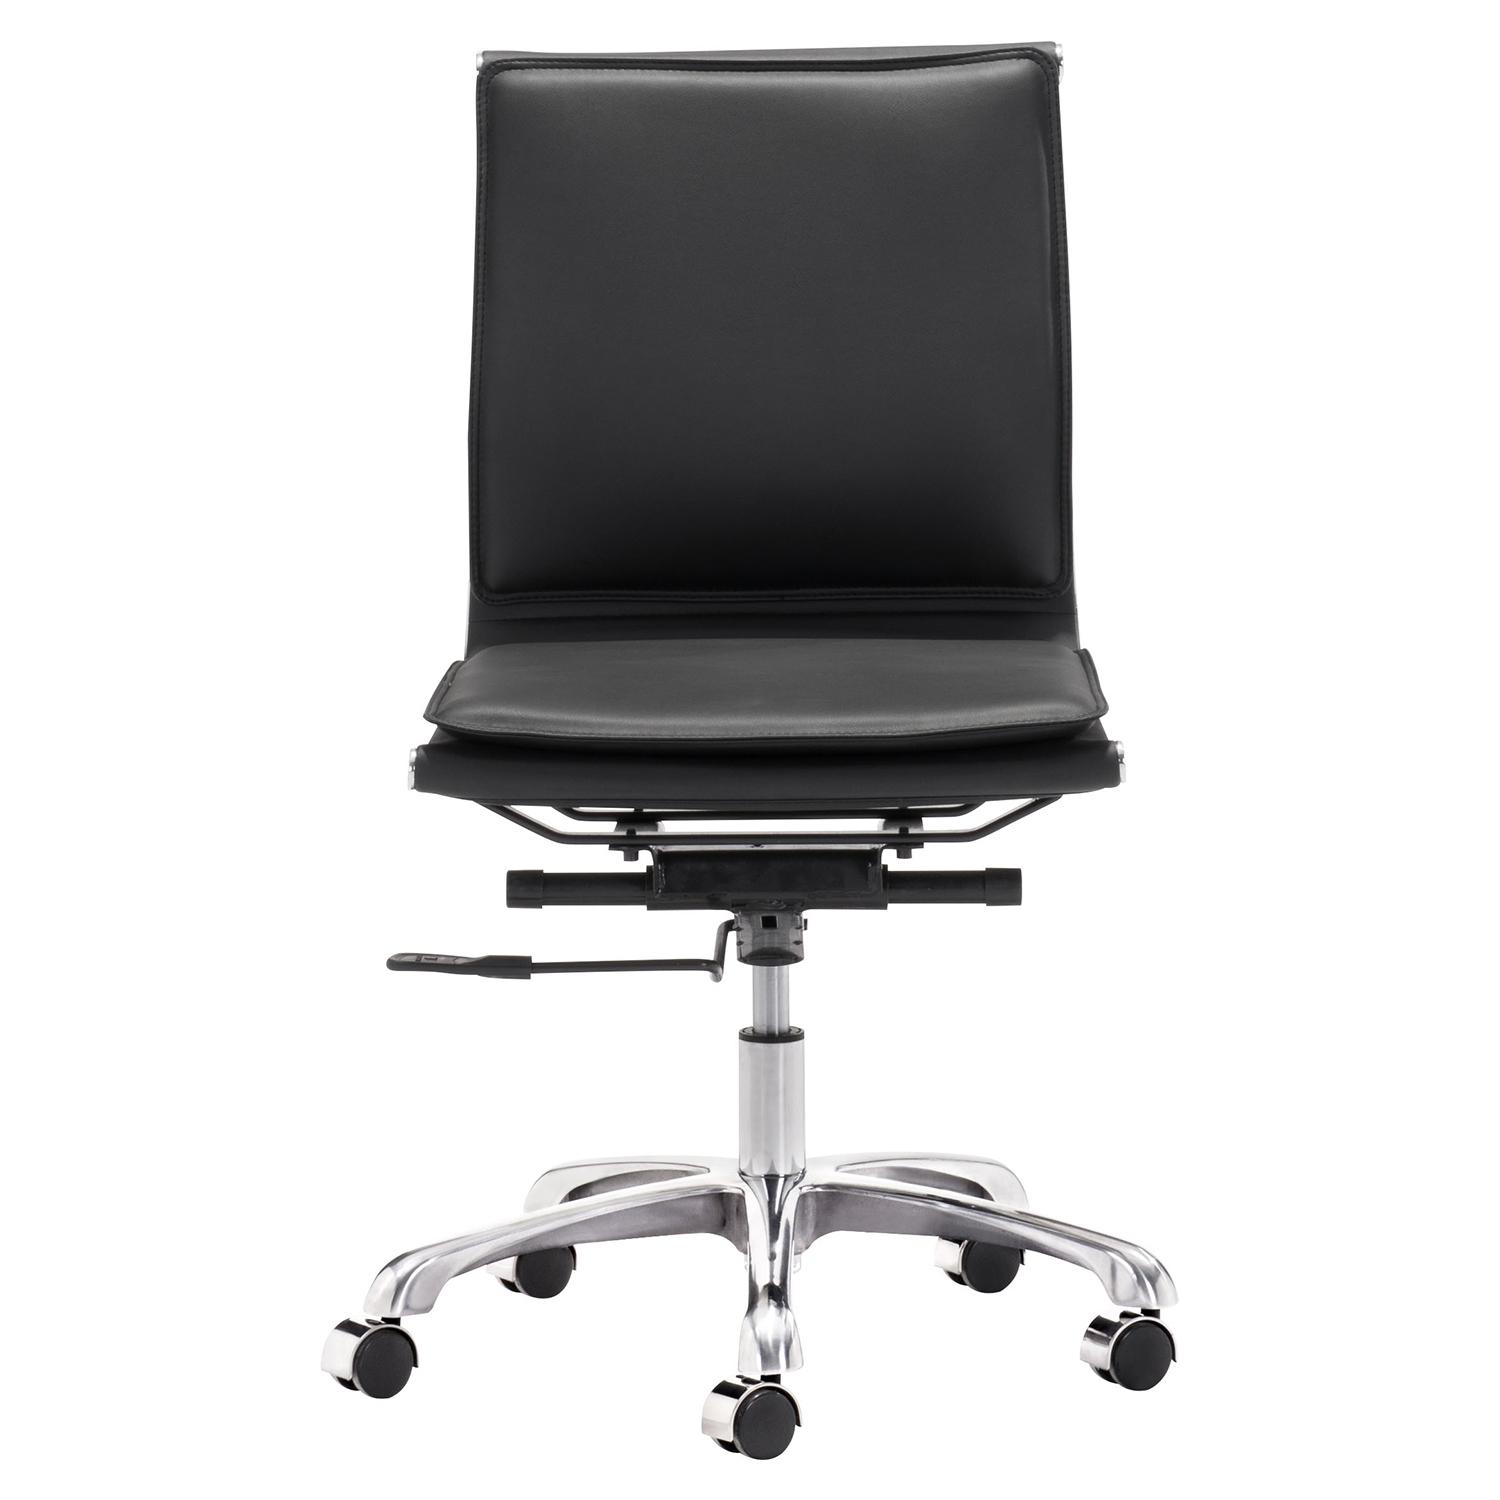 Lider Plus Armless Office Chair - Black - ZM-215218